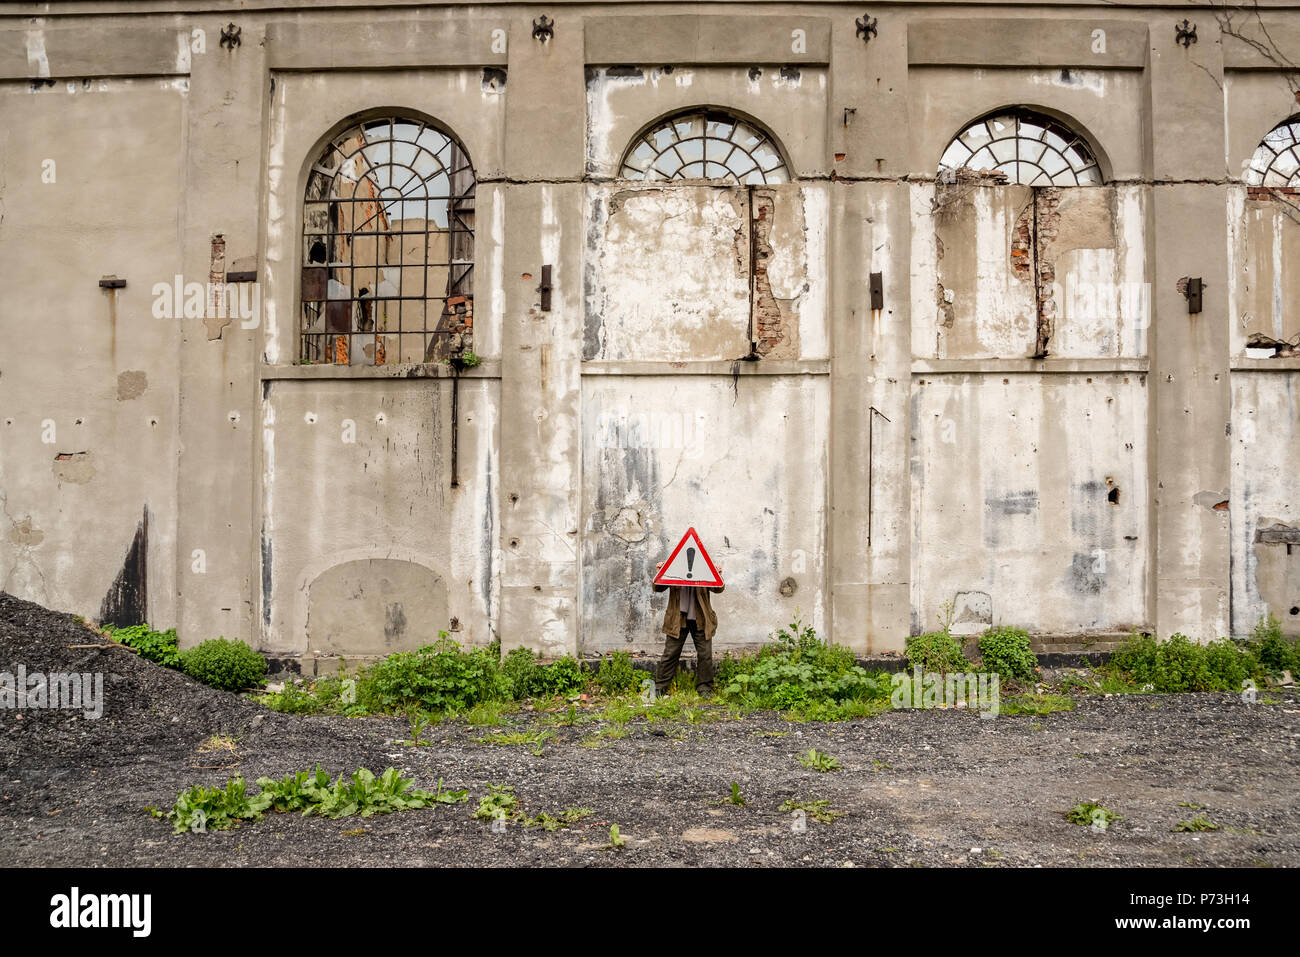 Unidentified man holds a red traffic triangle warning sign in front of his head near a ruined building. - Stock Image